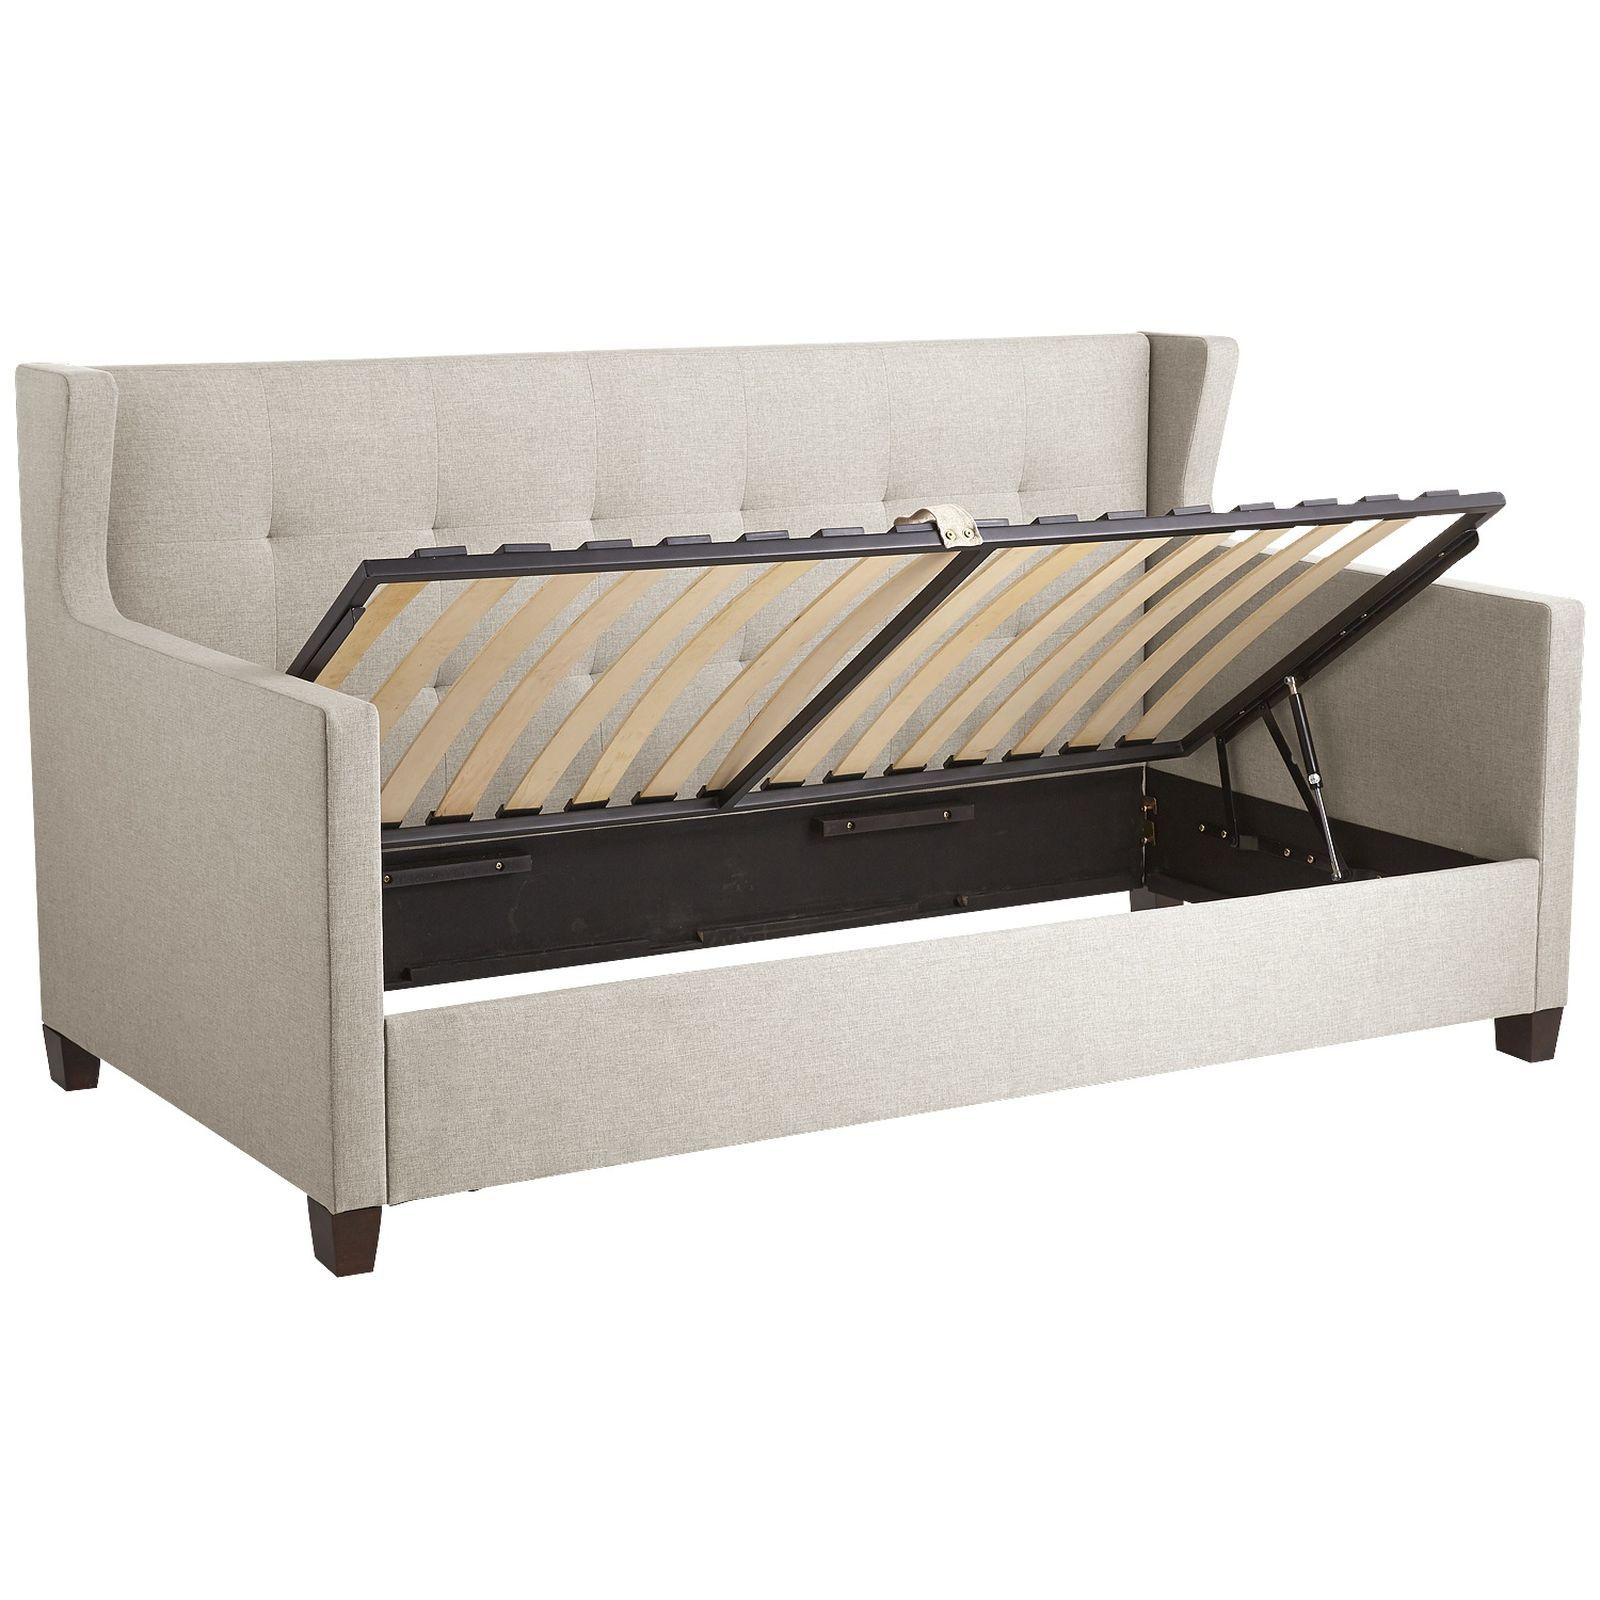 The versatile 3-in-1 Hester multitasks as a daybed, sofa and storage cubby  with the flick of a finger. Easy…   Hideaway bed, Furniture for small  spaces, Trundle bed